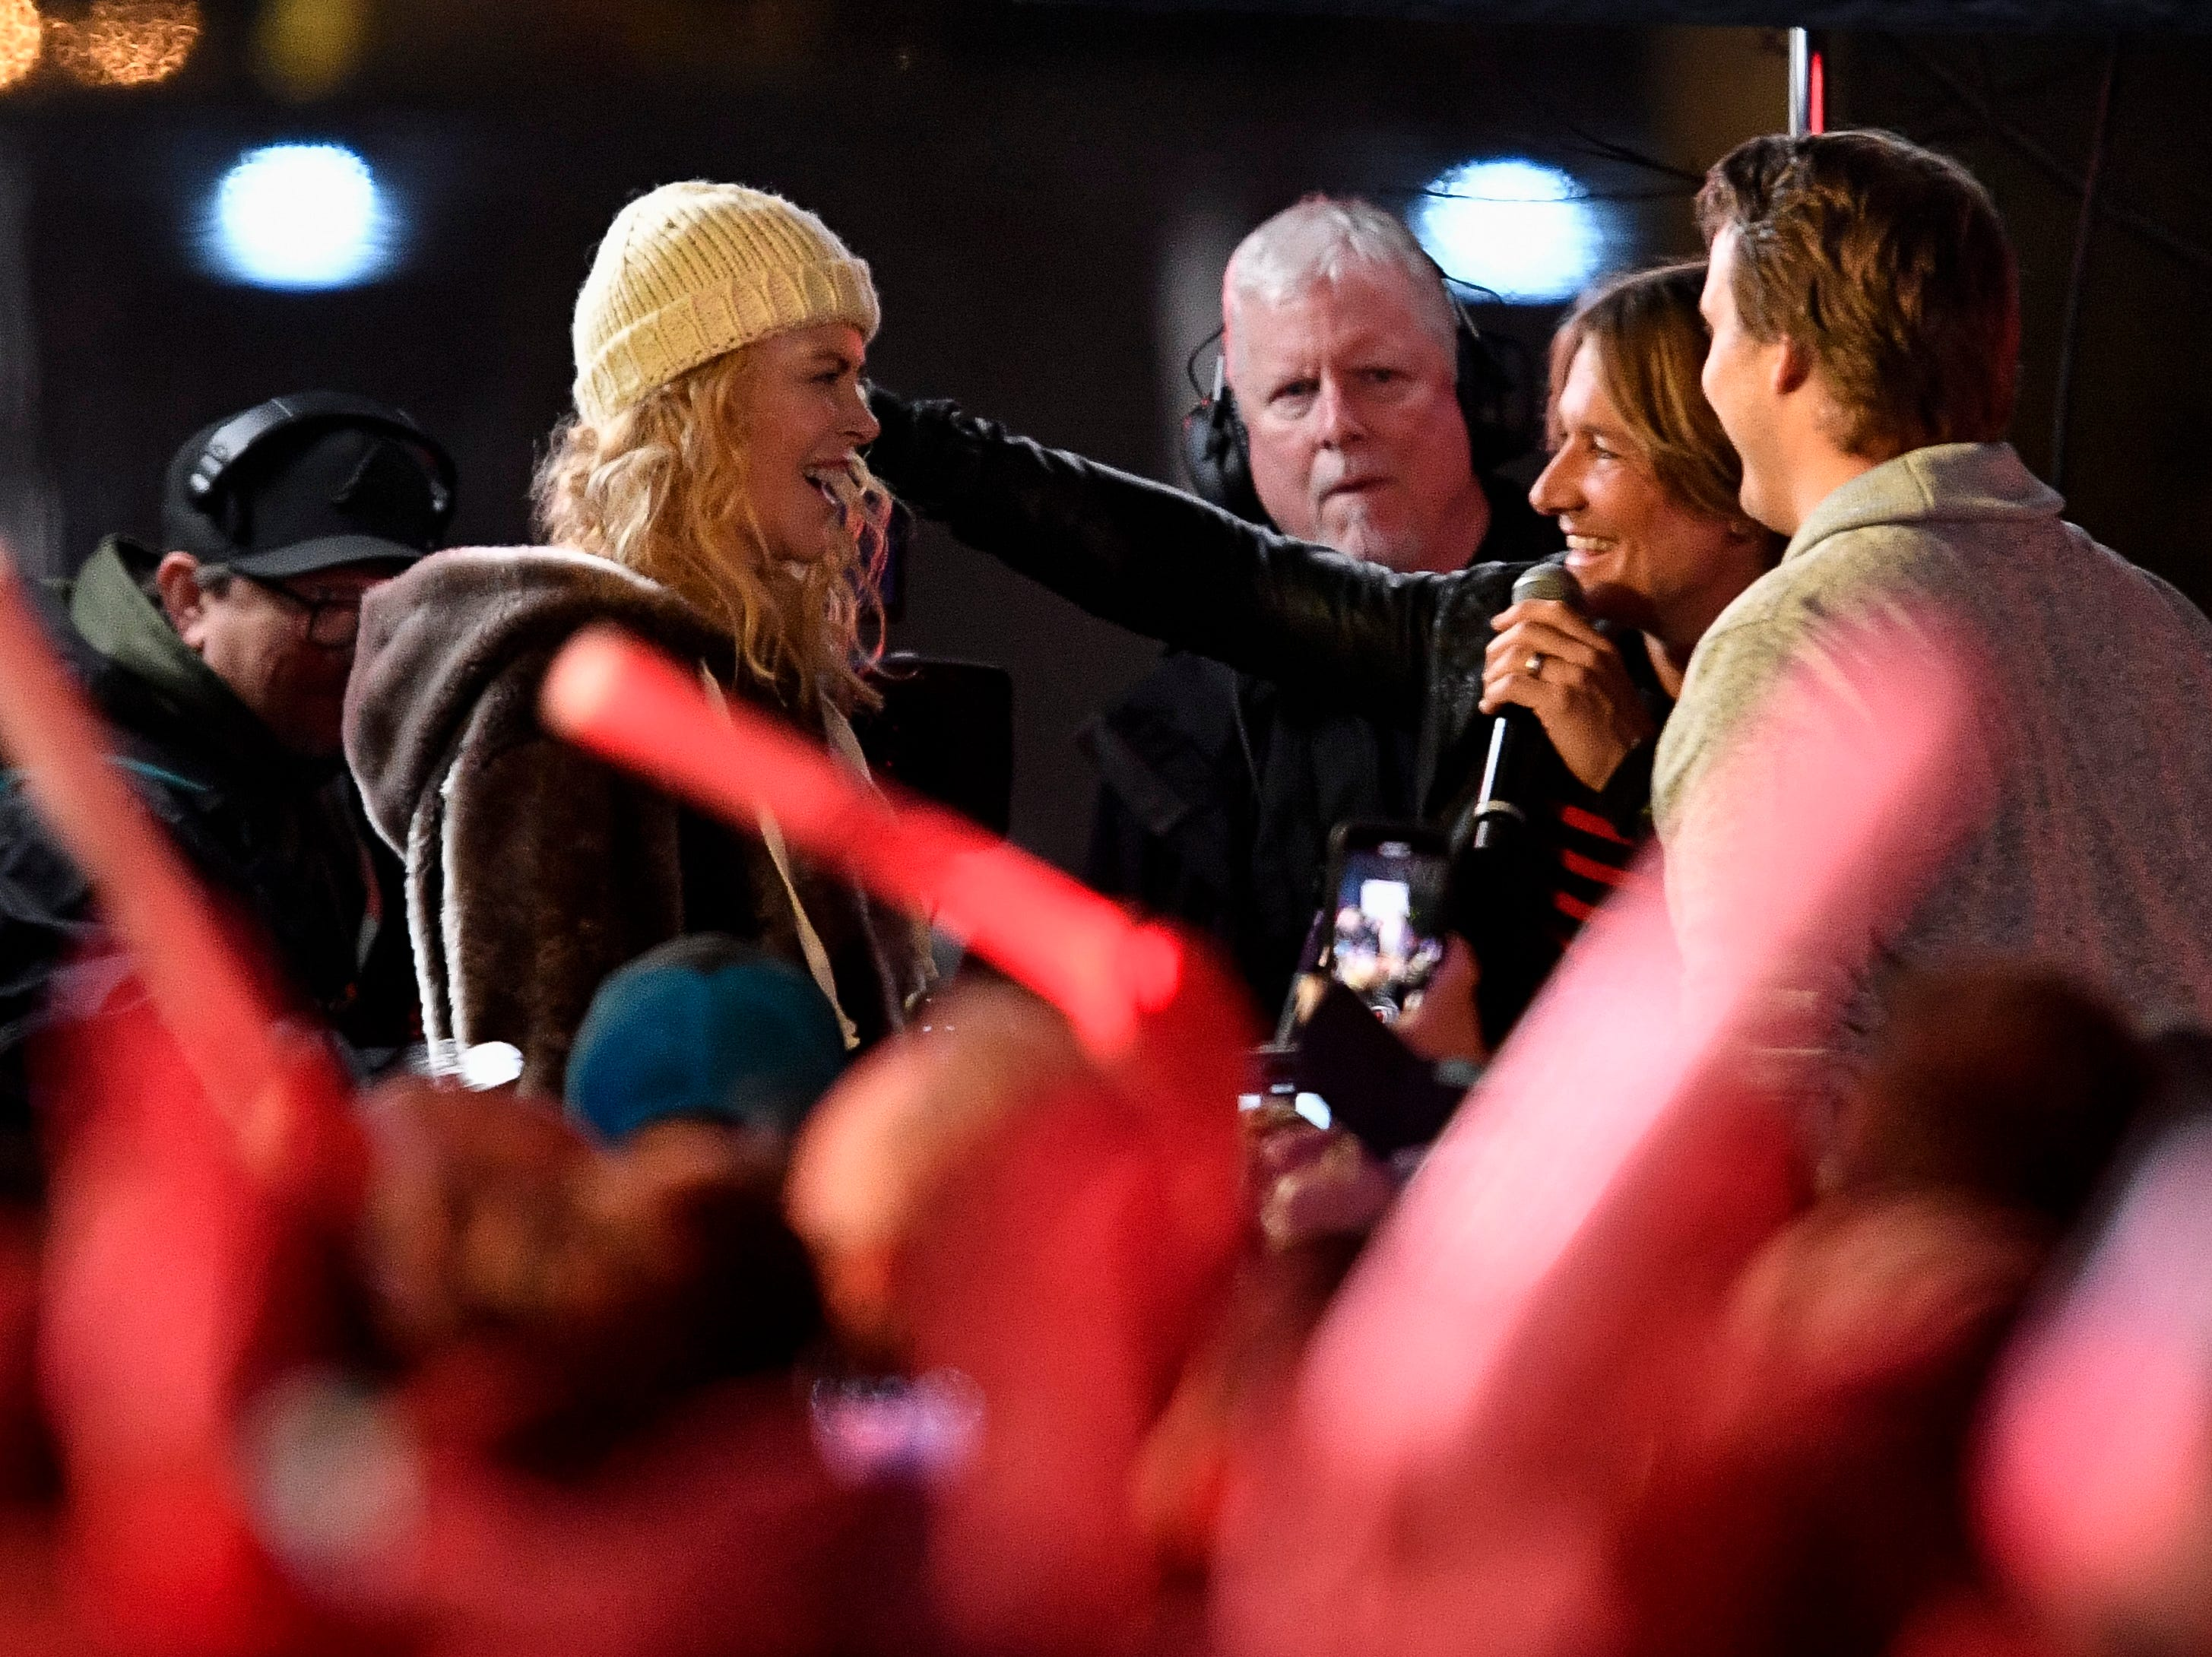 Nicole Kidman and Keith Urban greets fans during the Jack Daniel's Music City Midnight: New Year's Eve event at Bicentennial Capitol Mall State Park in Nashville, Tenn., Monday, Dec. 31, 2018.